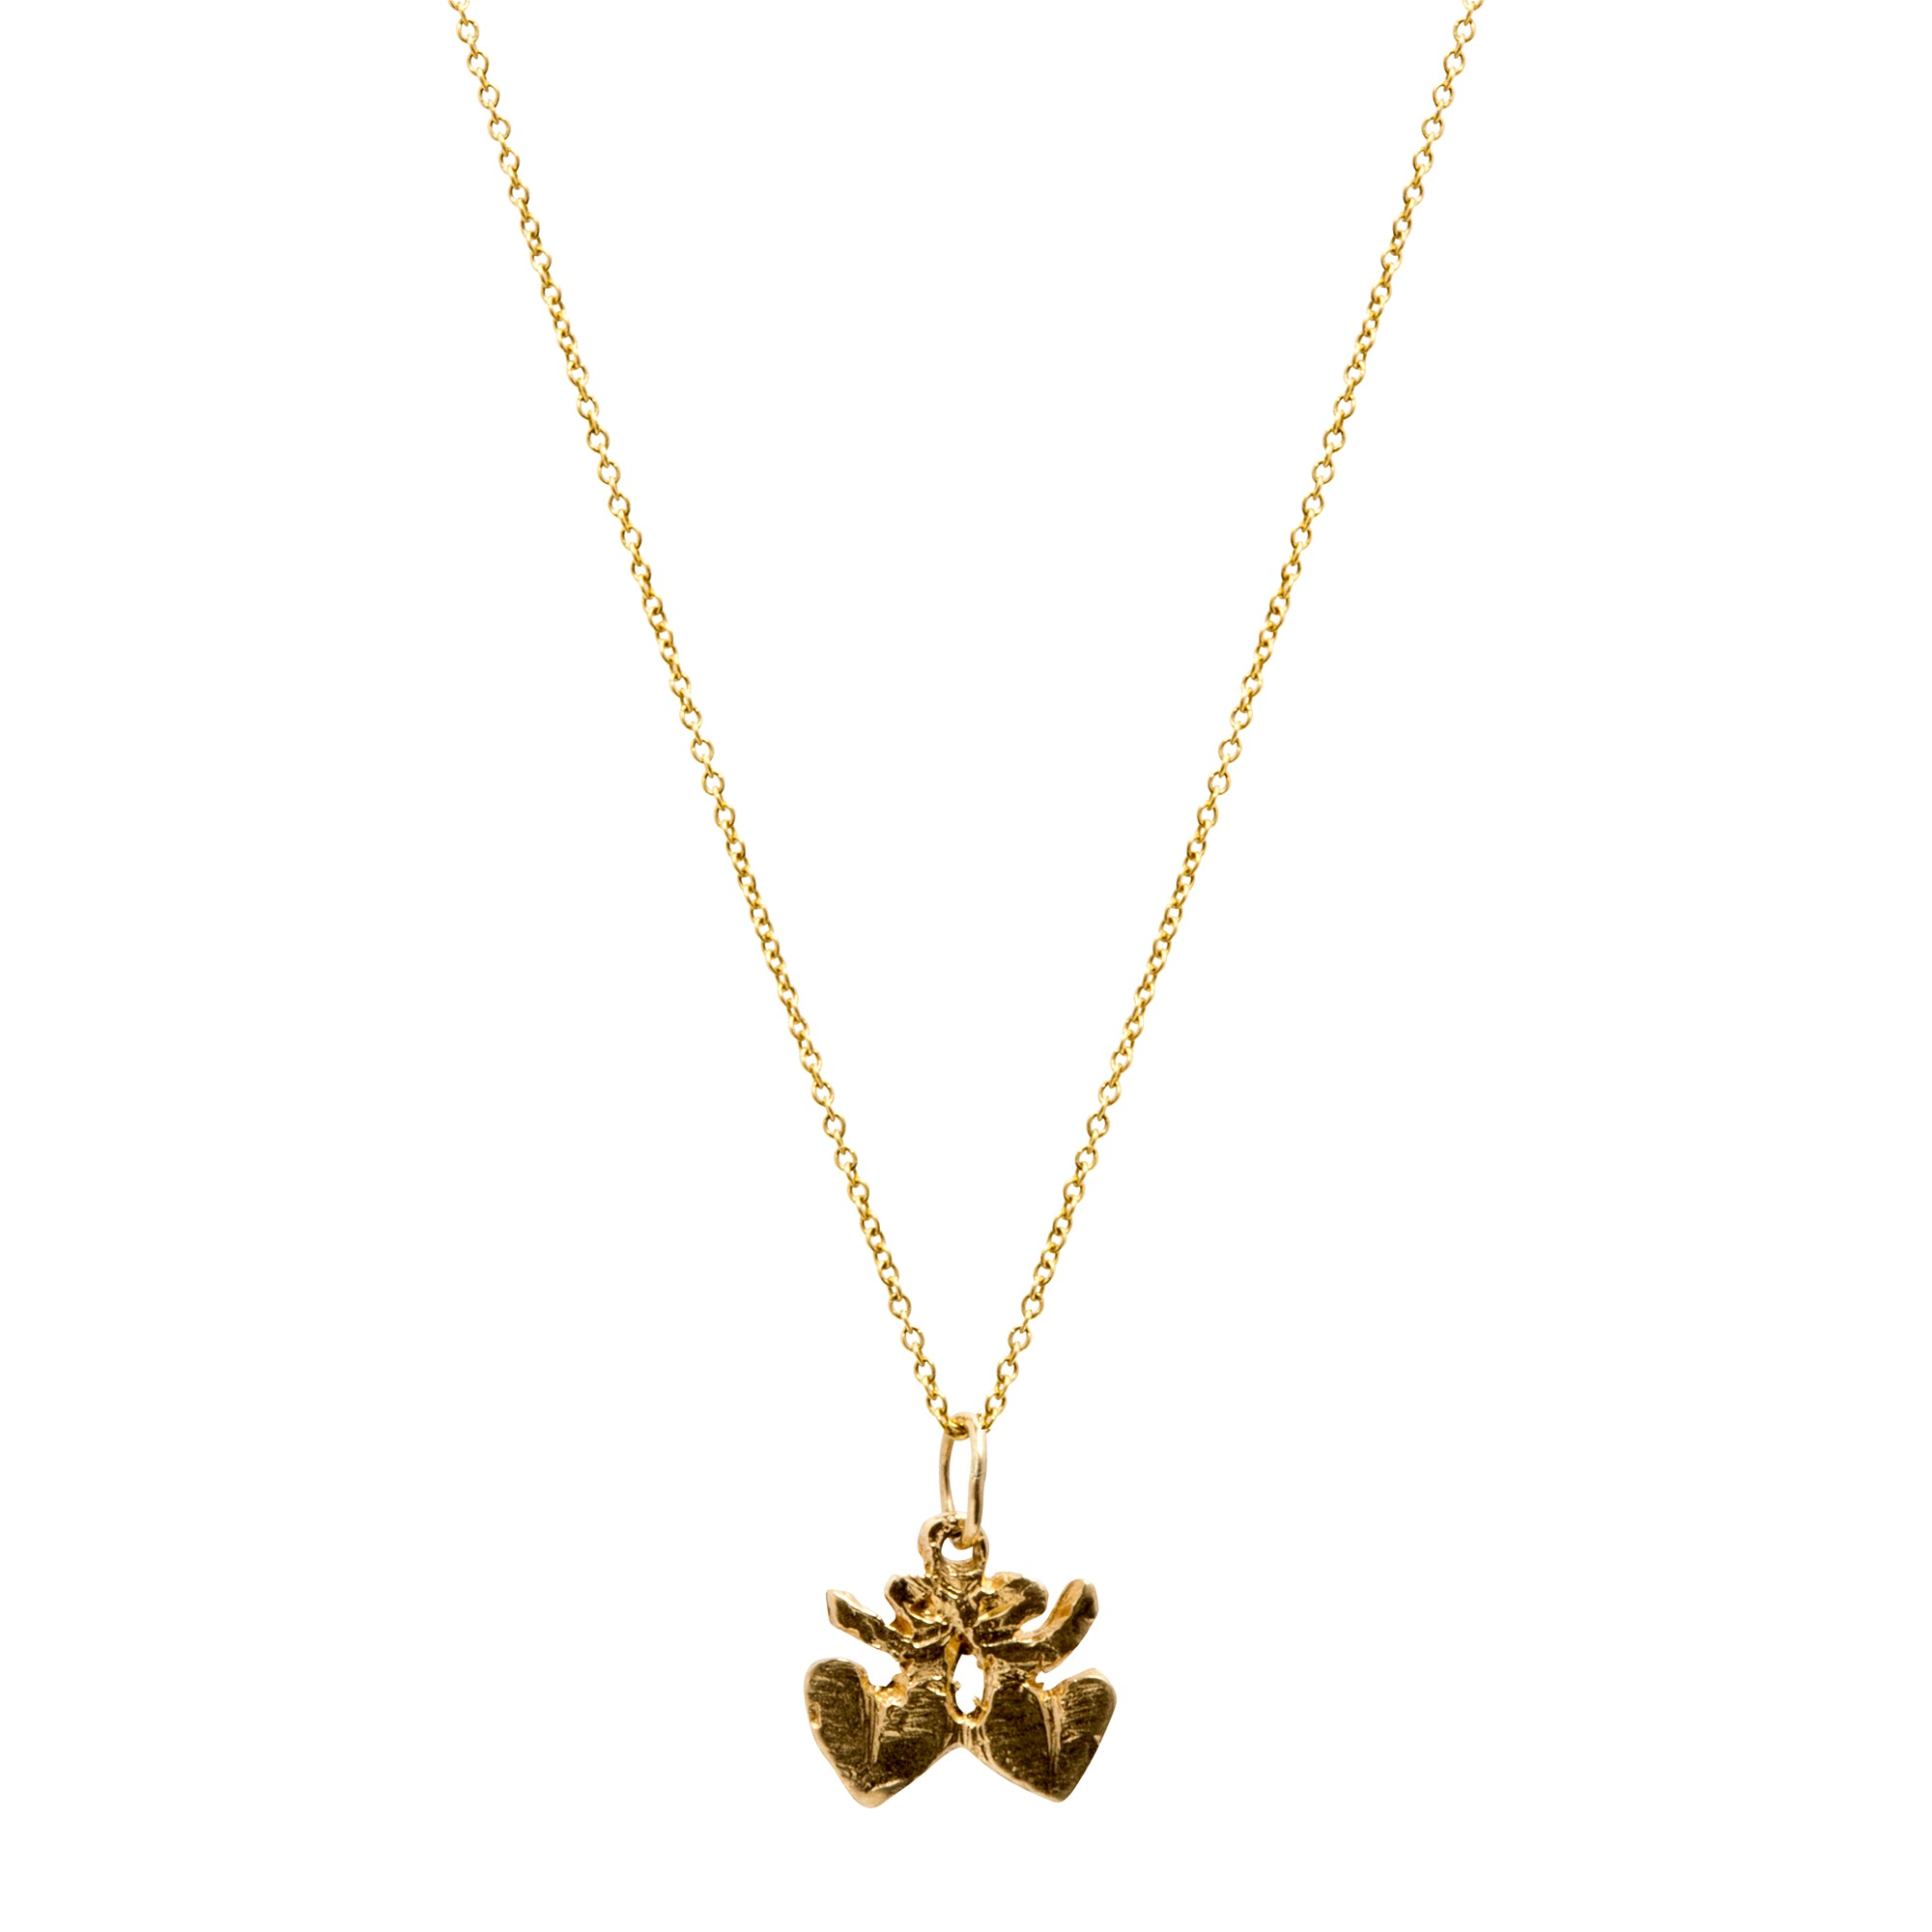 Gold Mini Double Heart Pendant by Xiao Wang for Broken English Jewelry